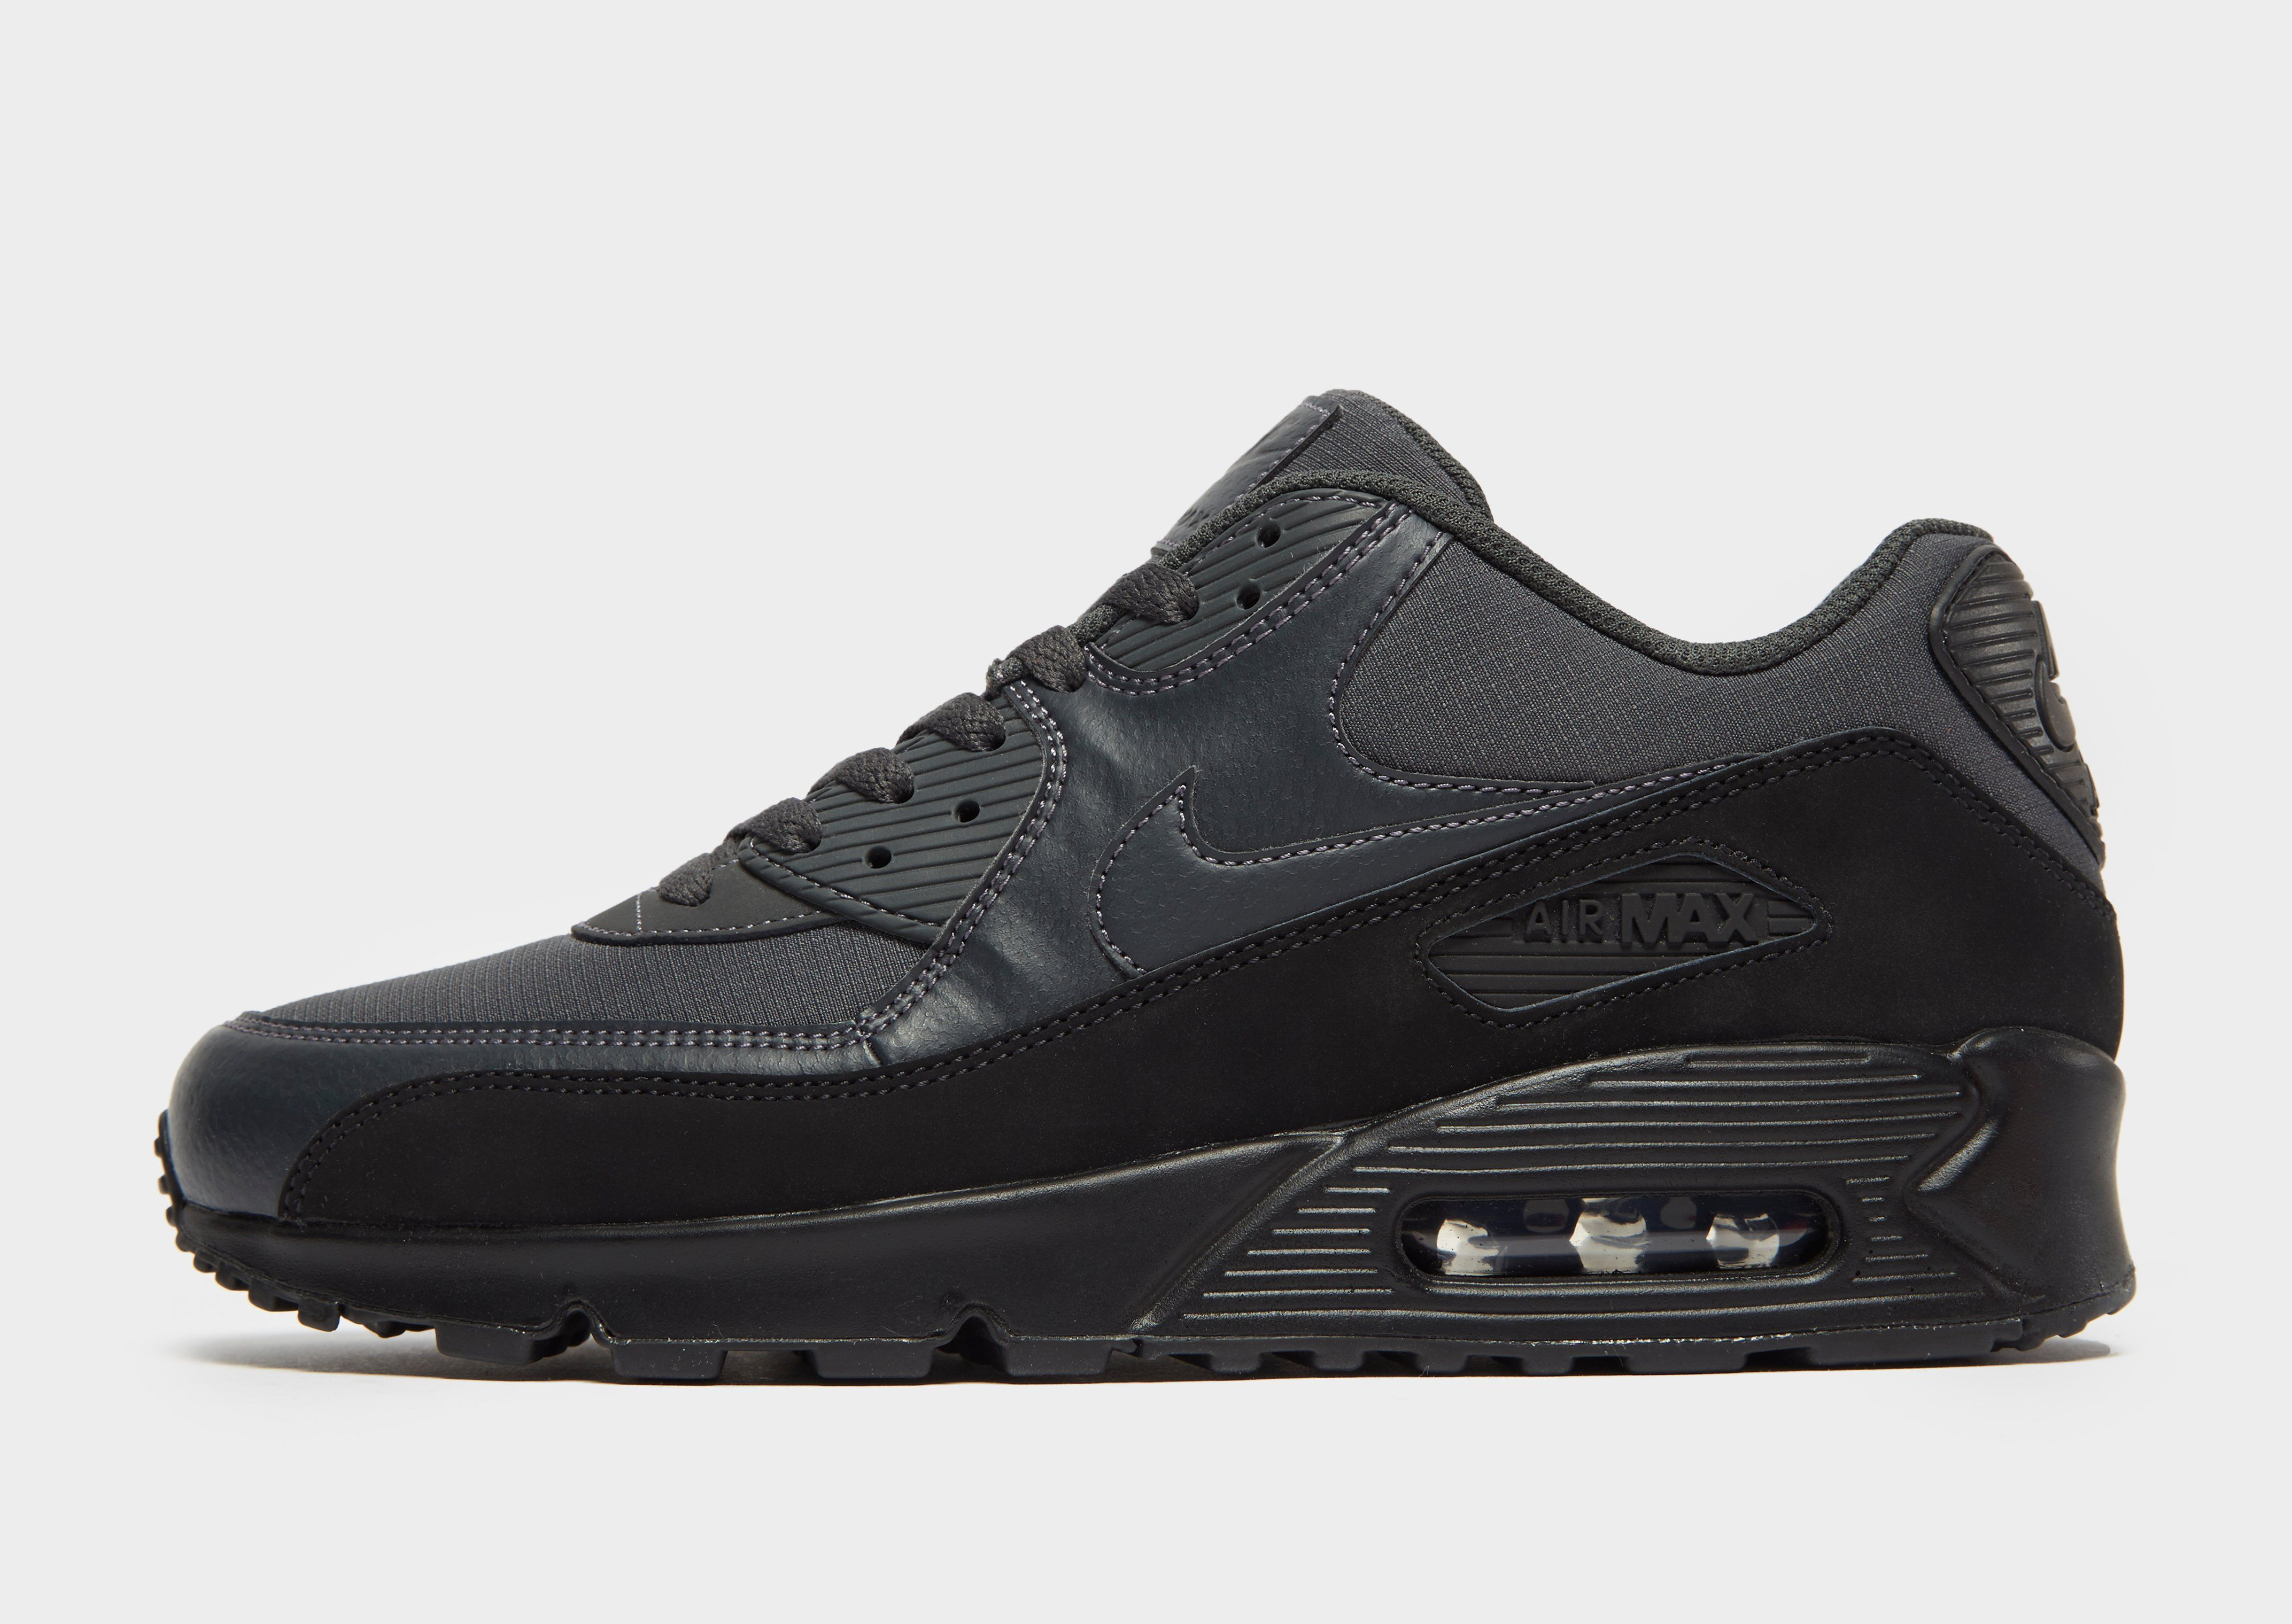 huge selection of 9c16e 3f54b Nike Air Max 90 Essential   JD Sports Ireland